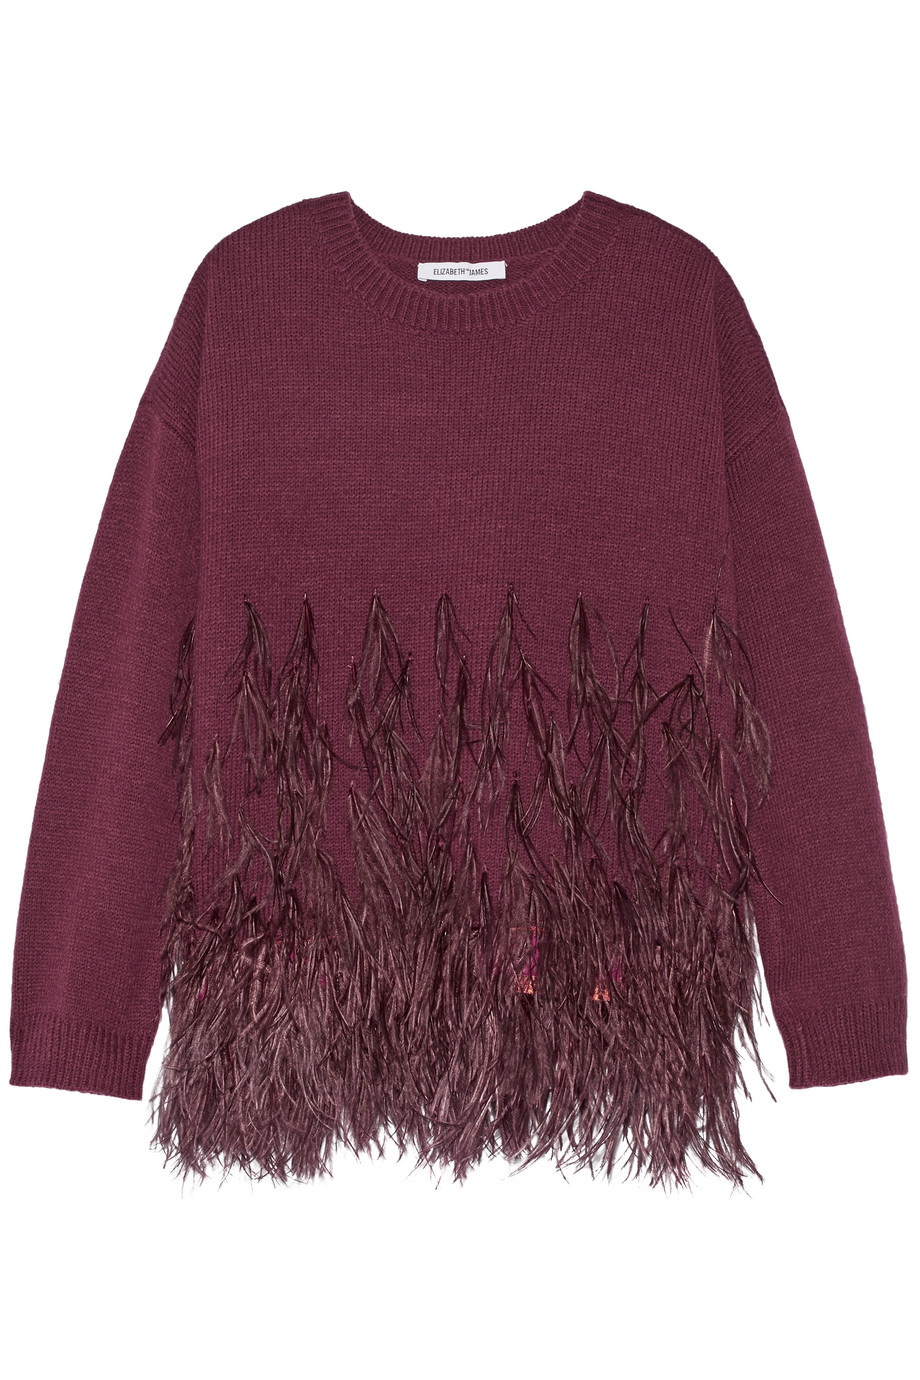 Elizabeth and James Feather-Trimmed Cotton-Blend Sweater, Burgundy, Women's, Size: L